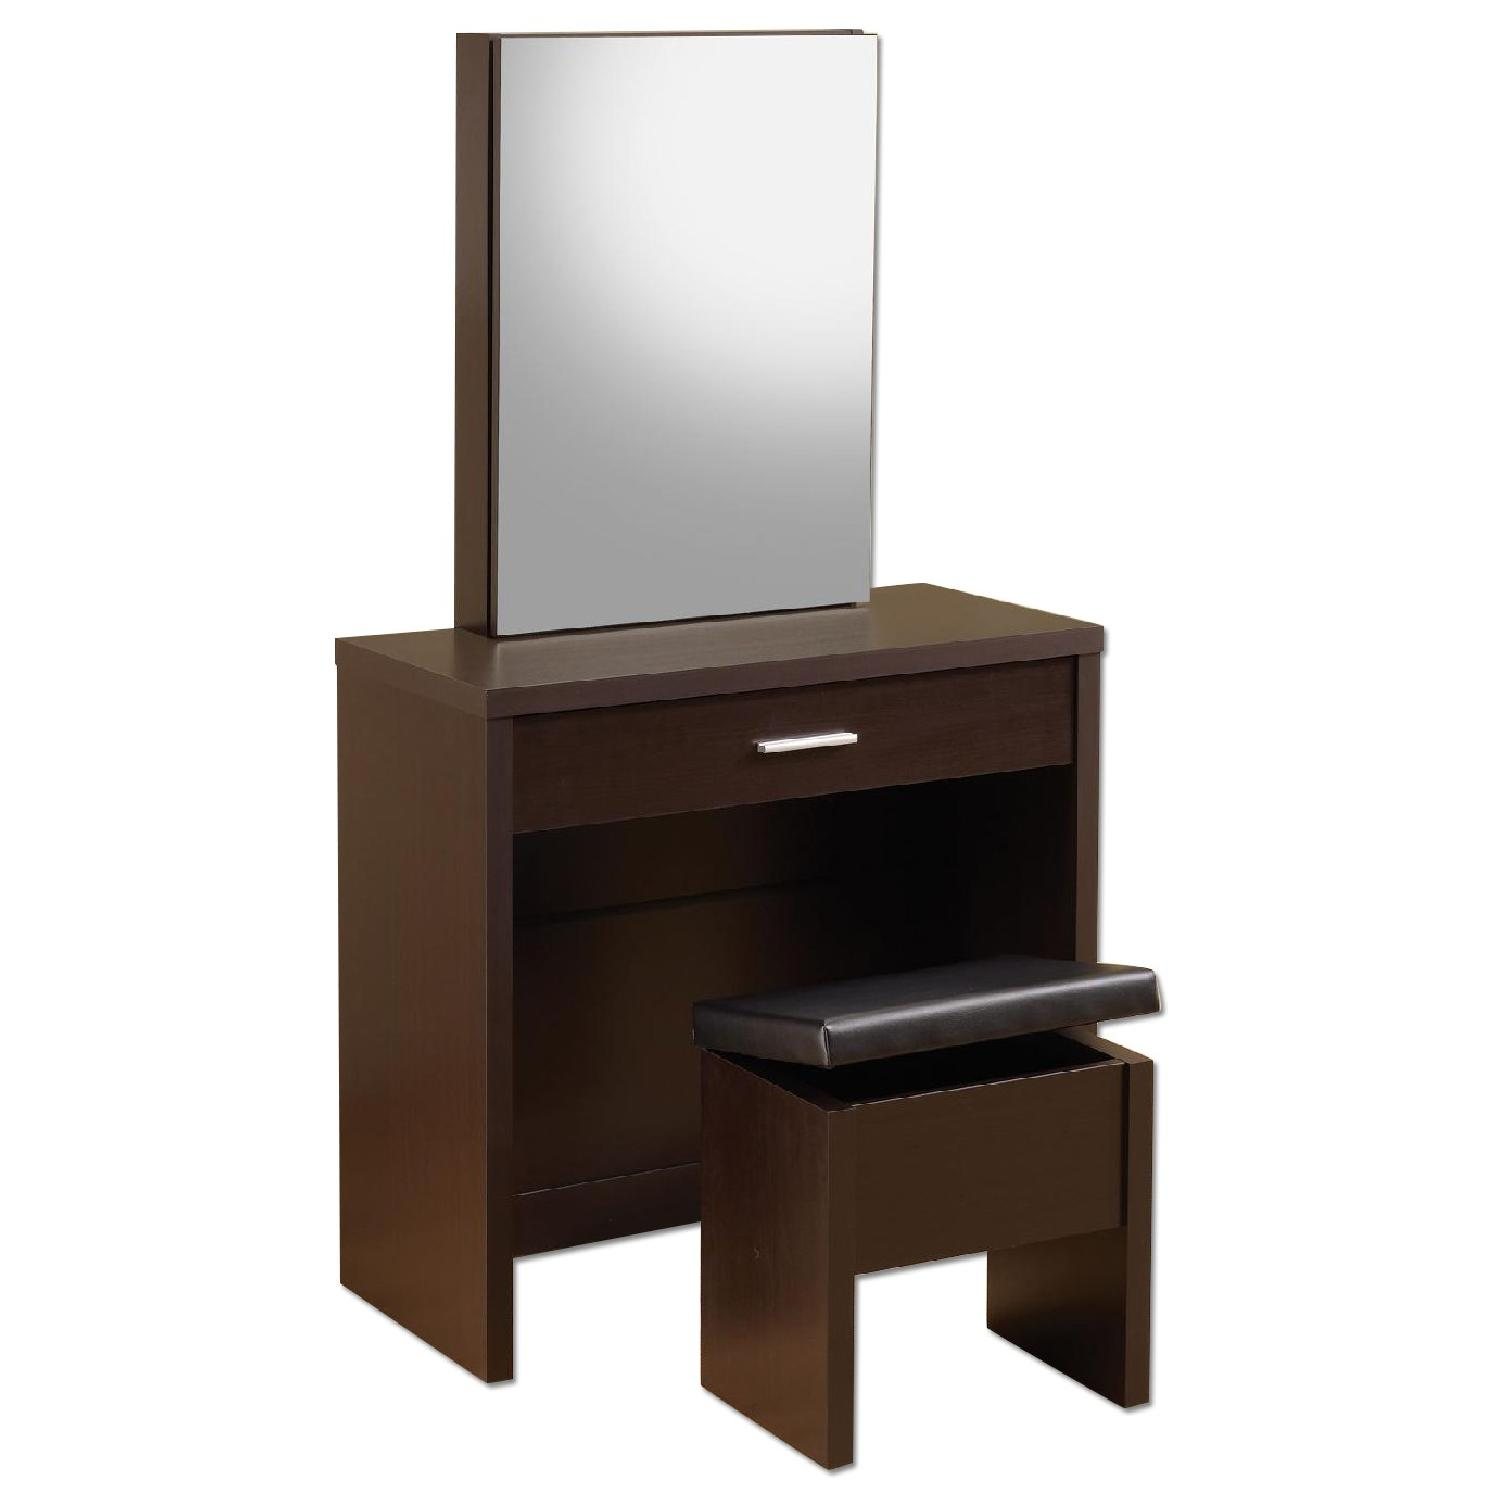 Vanity & Stool w/ Hidden Jewelry Storage Compartment in Cappuccino Finish